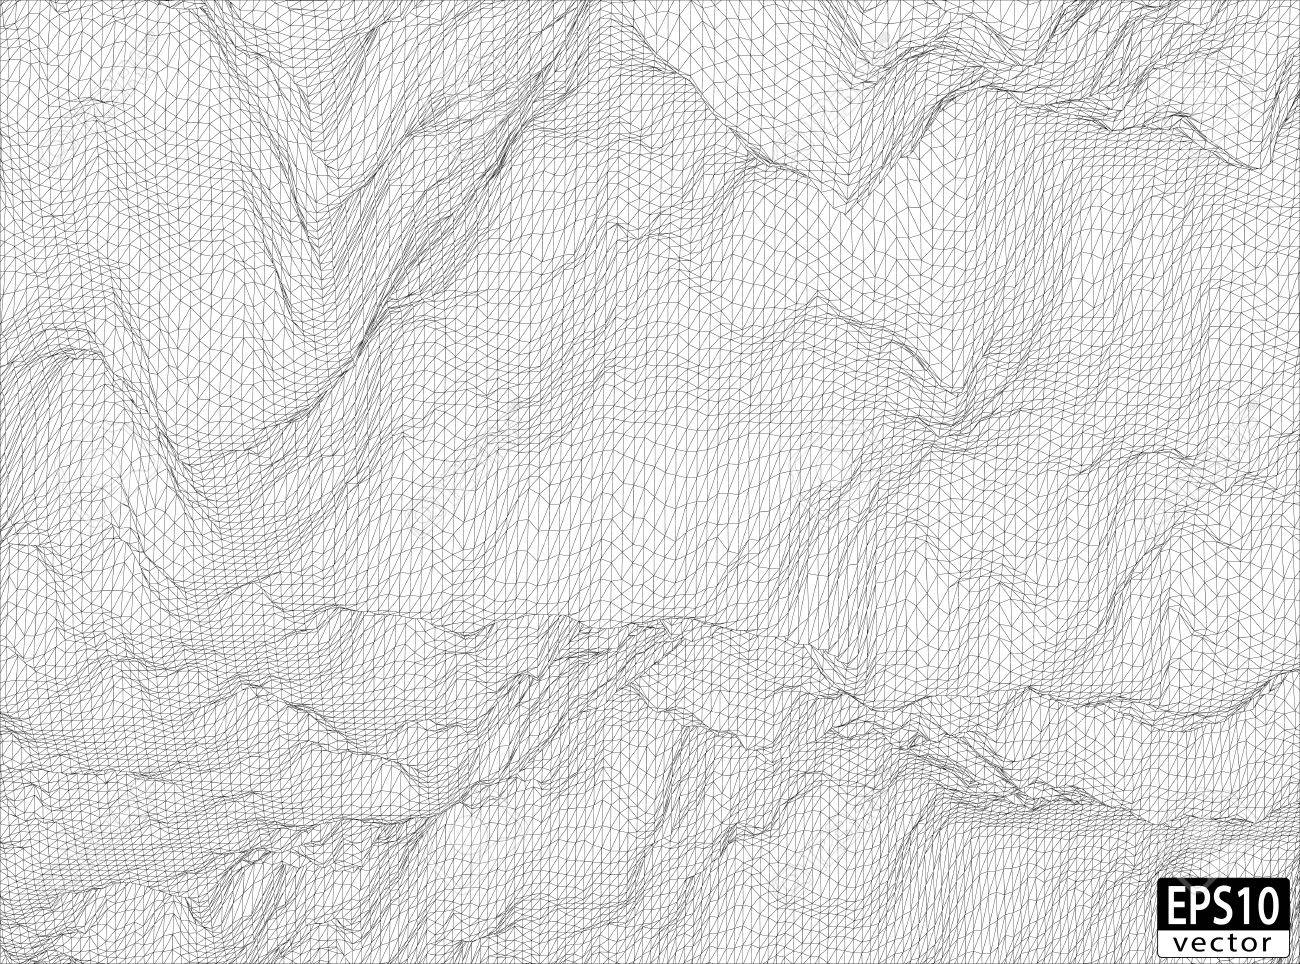 3D Detailed Wireframe EPS10 Vector - 30510456